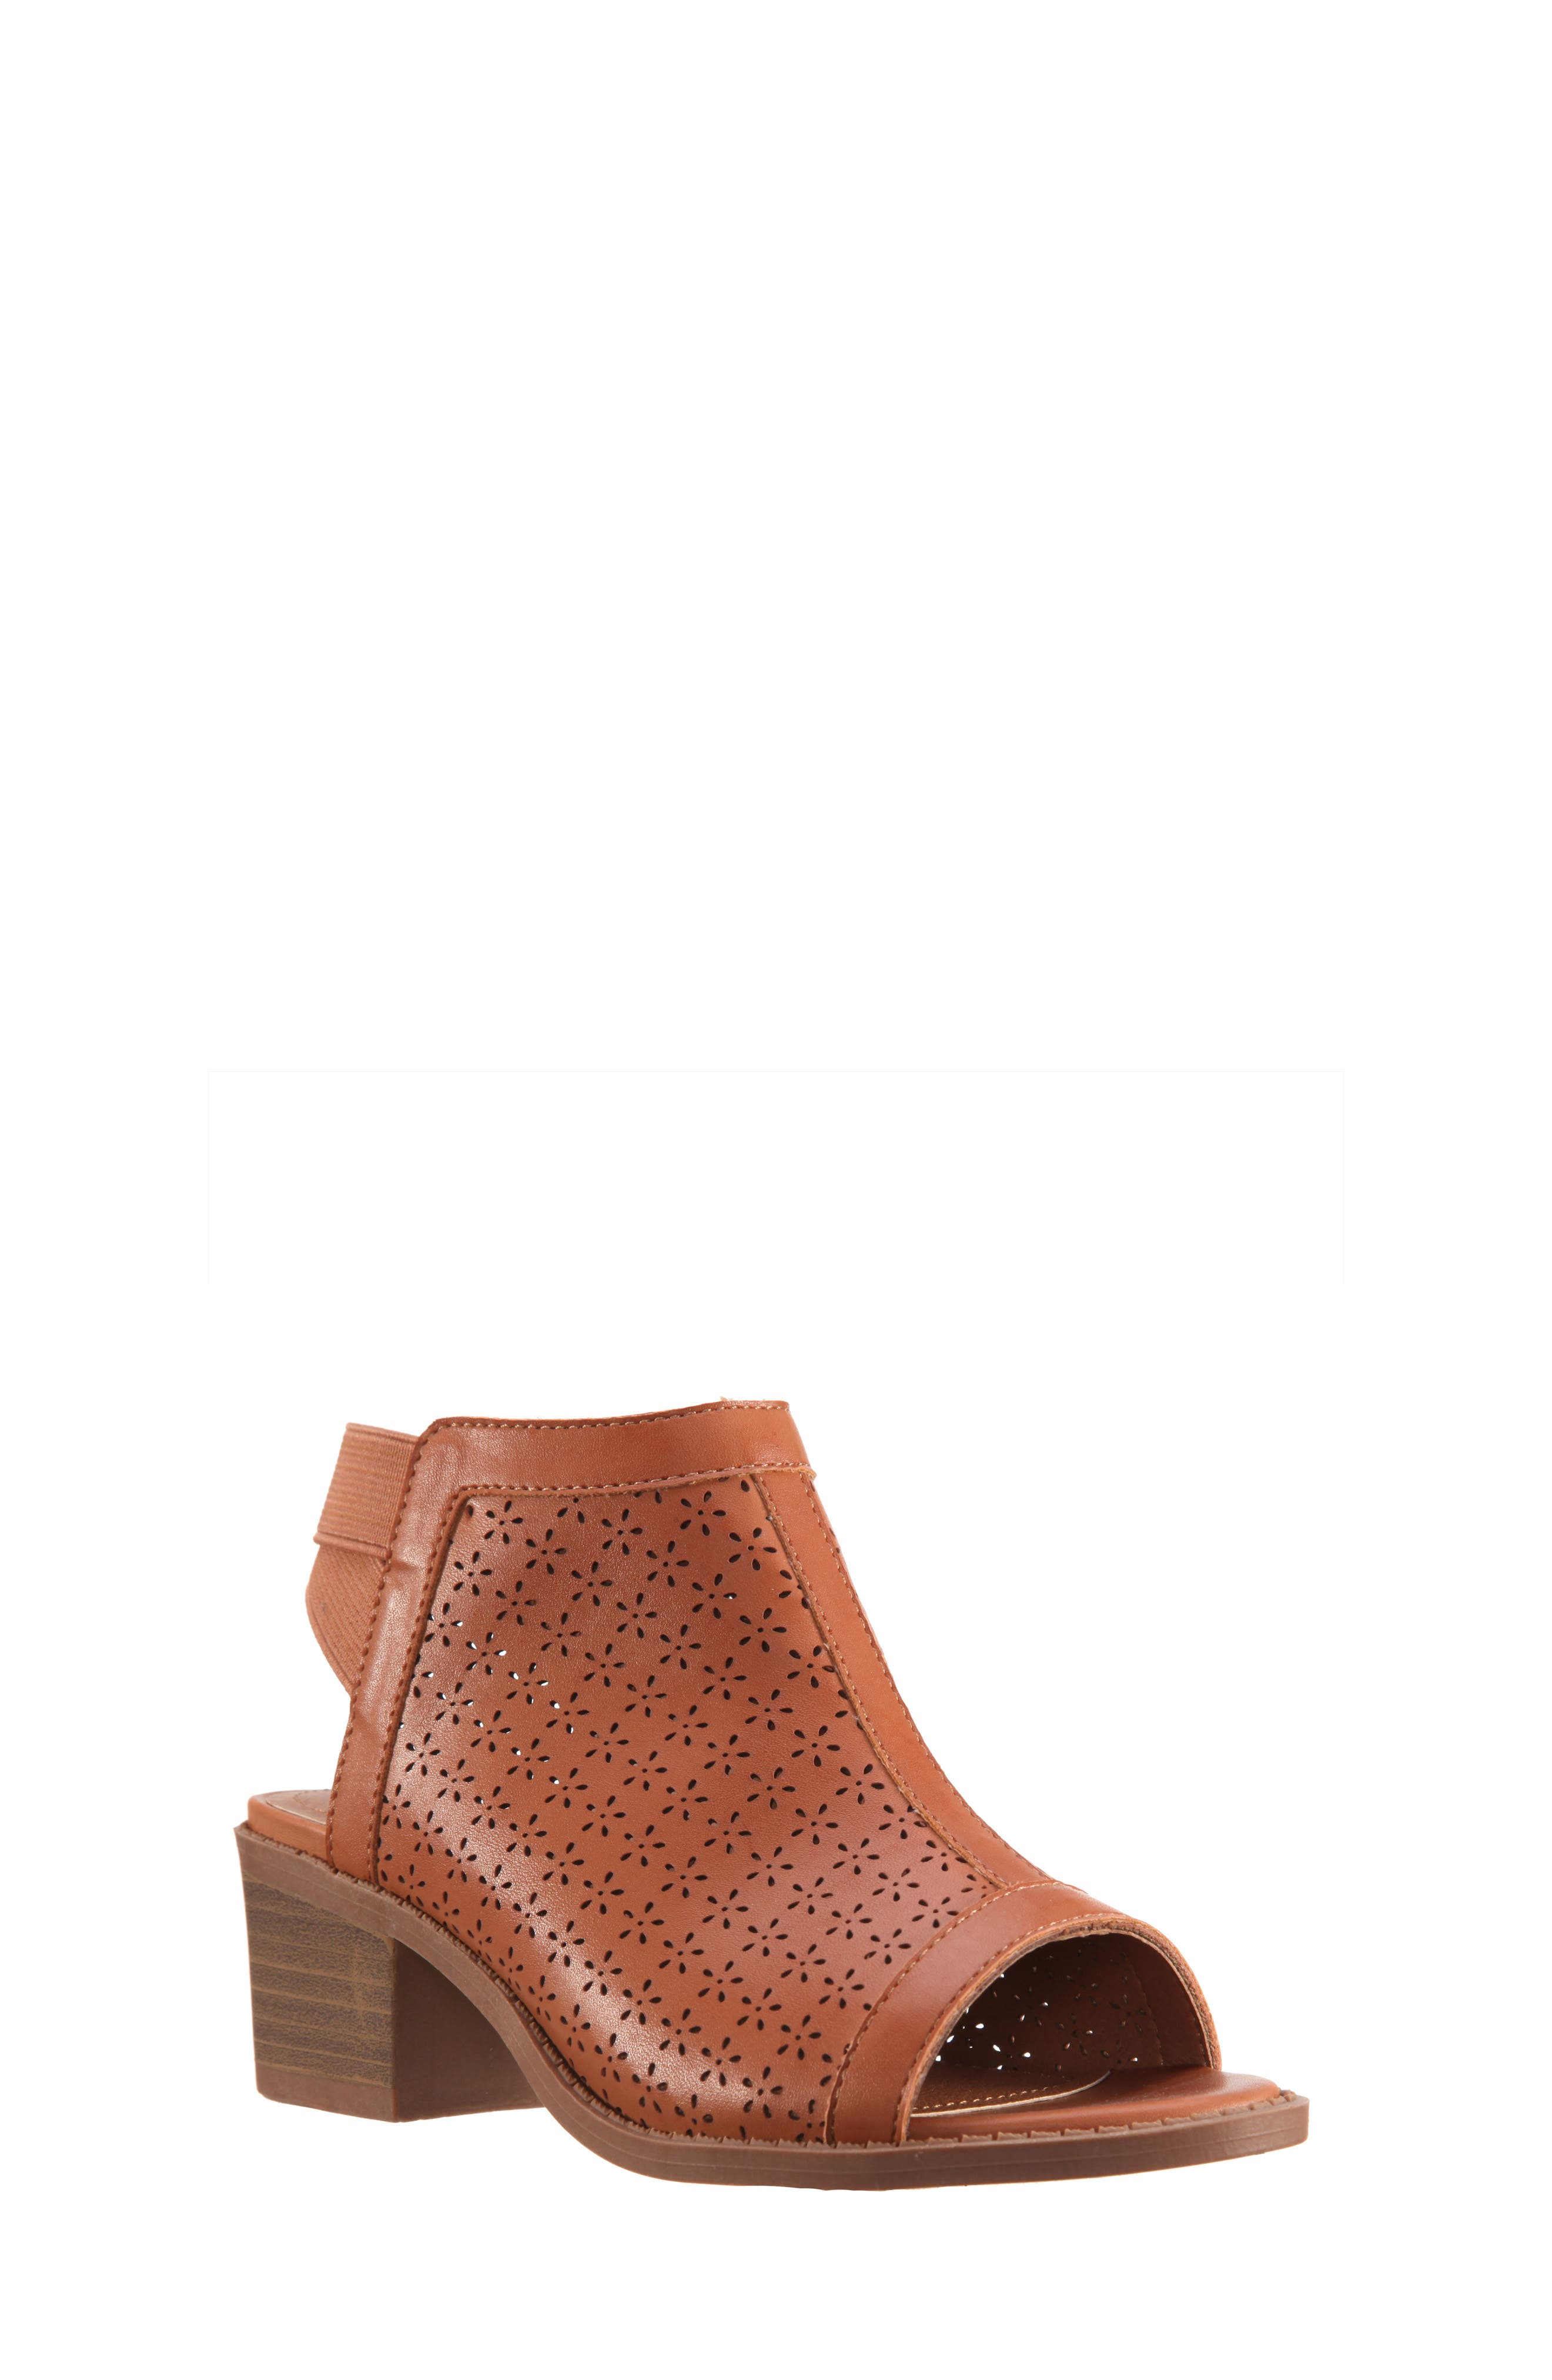 Maya Perforated Peep Toe Bootie,                             Main thumbnail 1, color,                             Tan Burnished